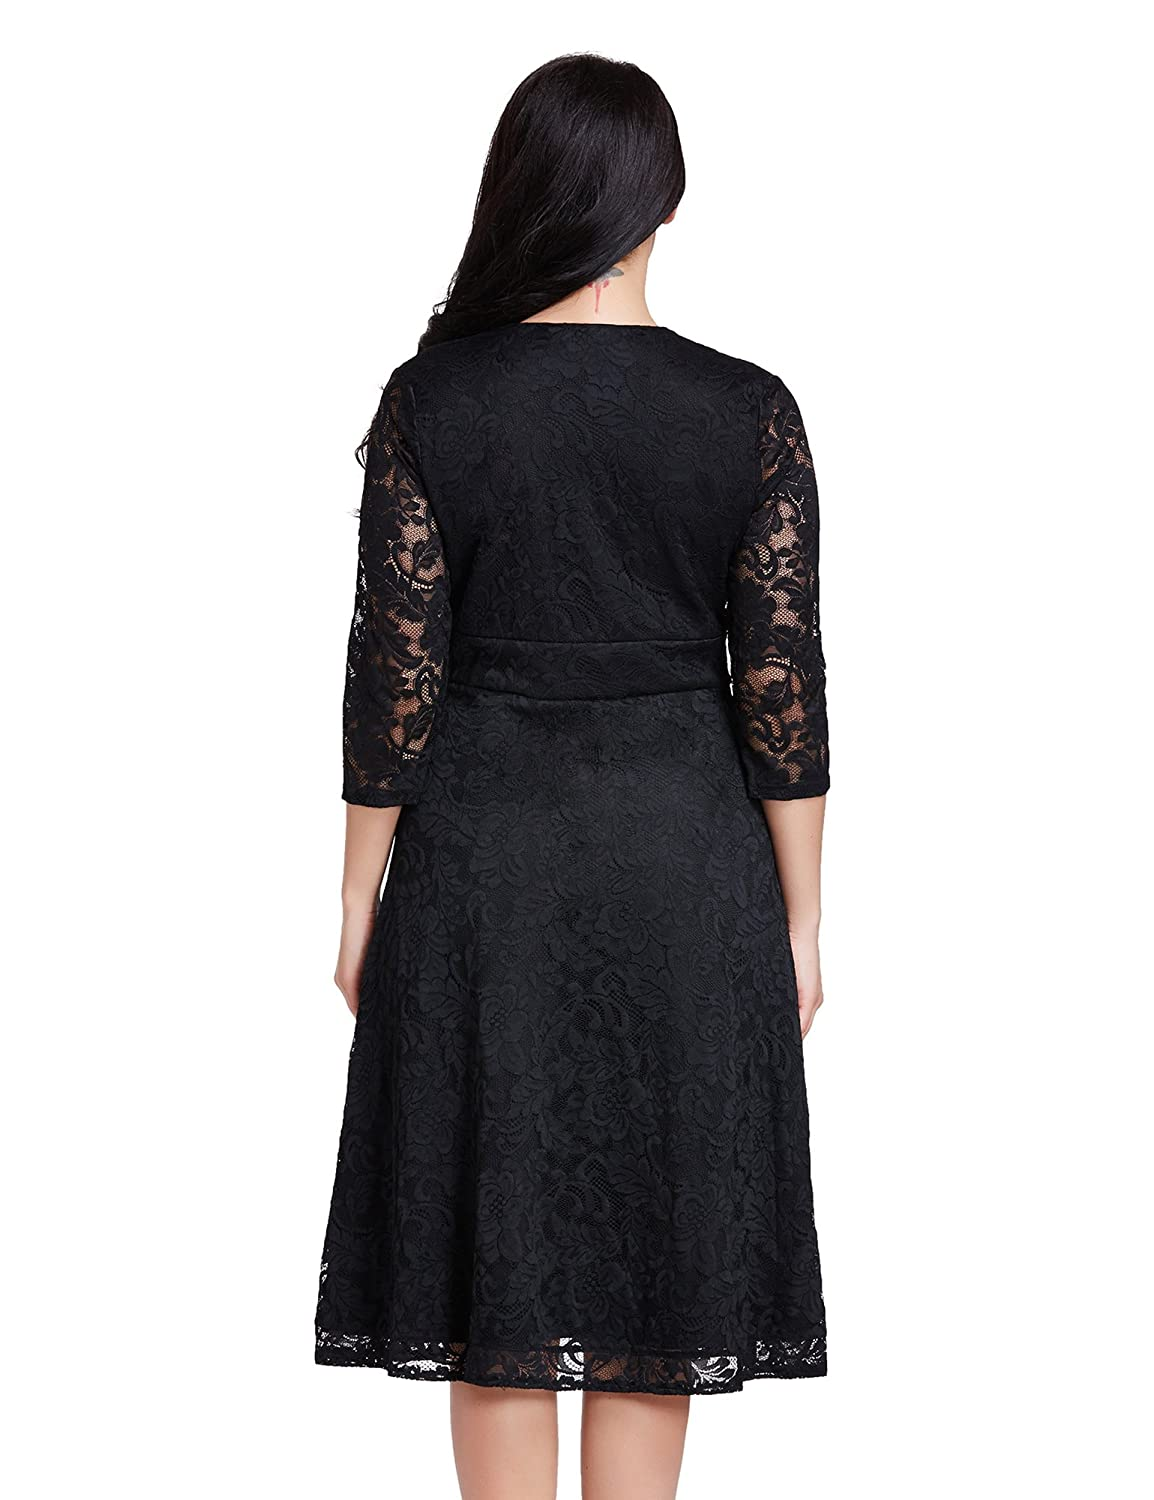 c819cf6e71ae Lookbook Store Women's Plus Size Lace Bridal Formal Skater Dress 12W-32W at  Amazon Women's Clothing store: